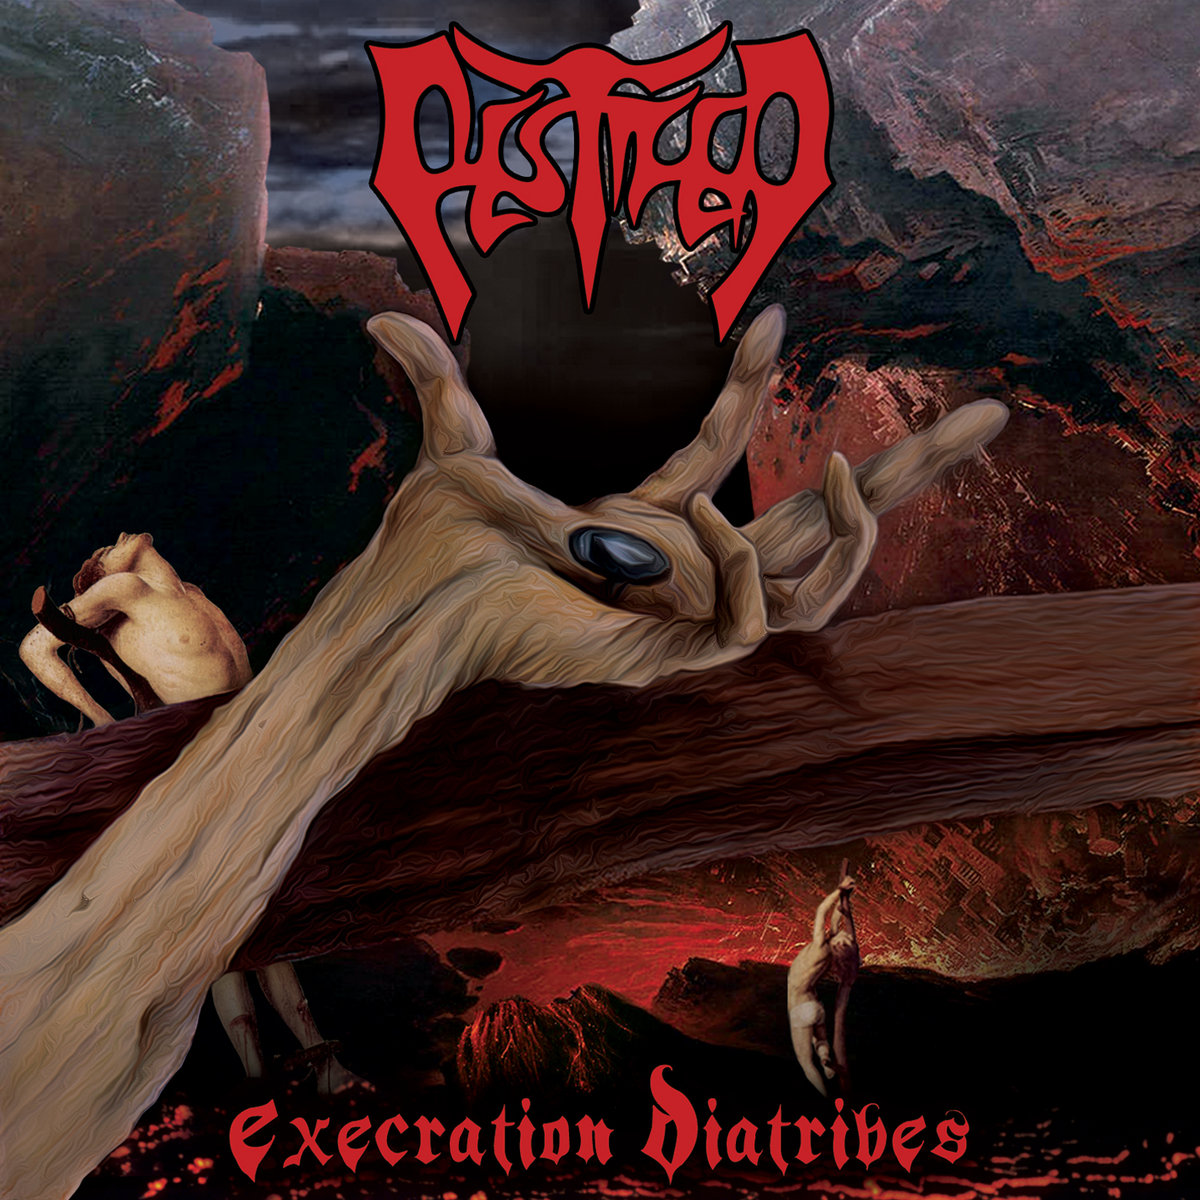 Execration Diatribes